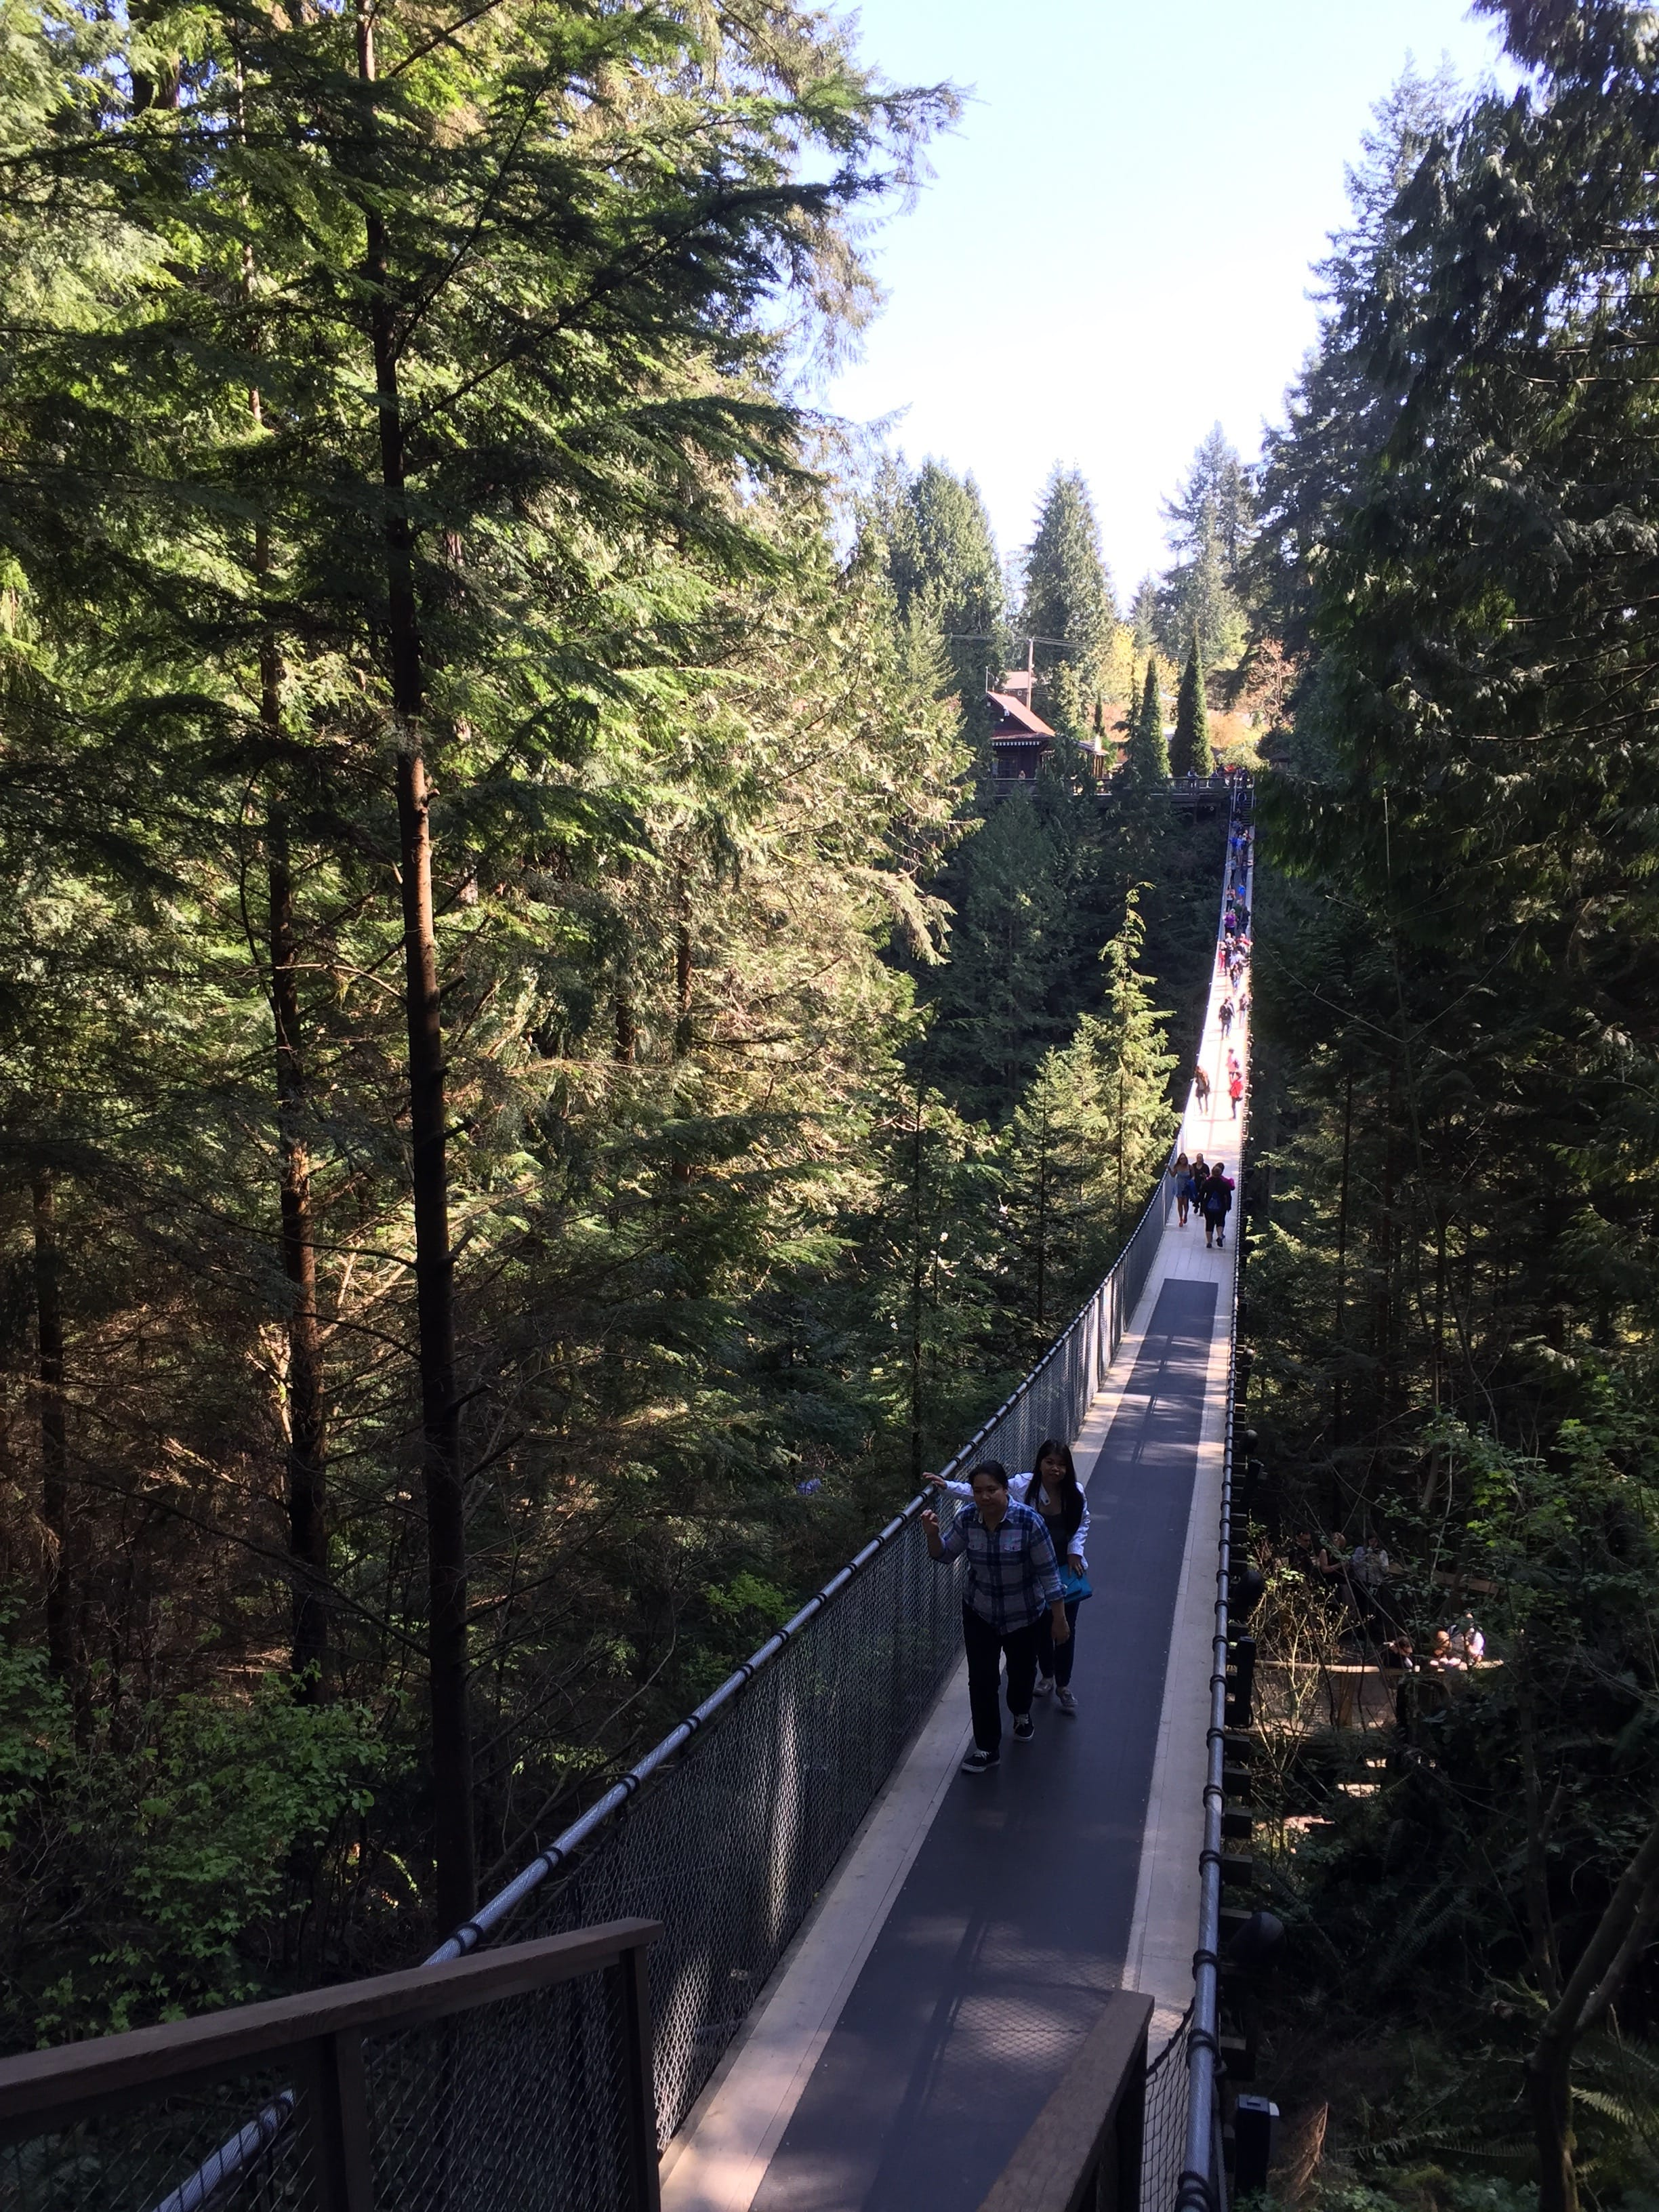 The Capilano Suspension Bridge may be the biggest fear of every person who has a fear of heights, but it's a pretty cool place to experience. Basically, you go through a series of suspension bridges in the trees of a rainforest.